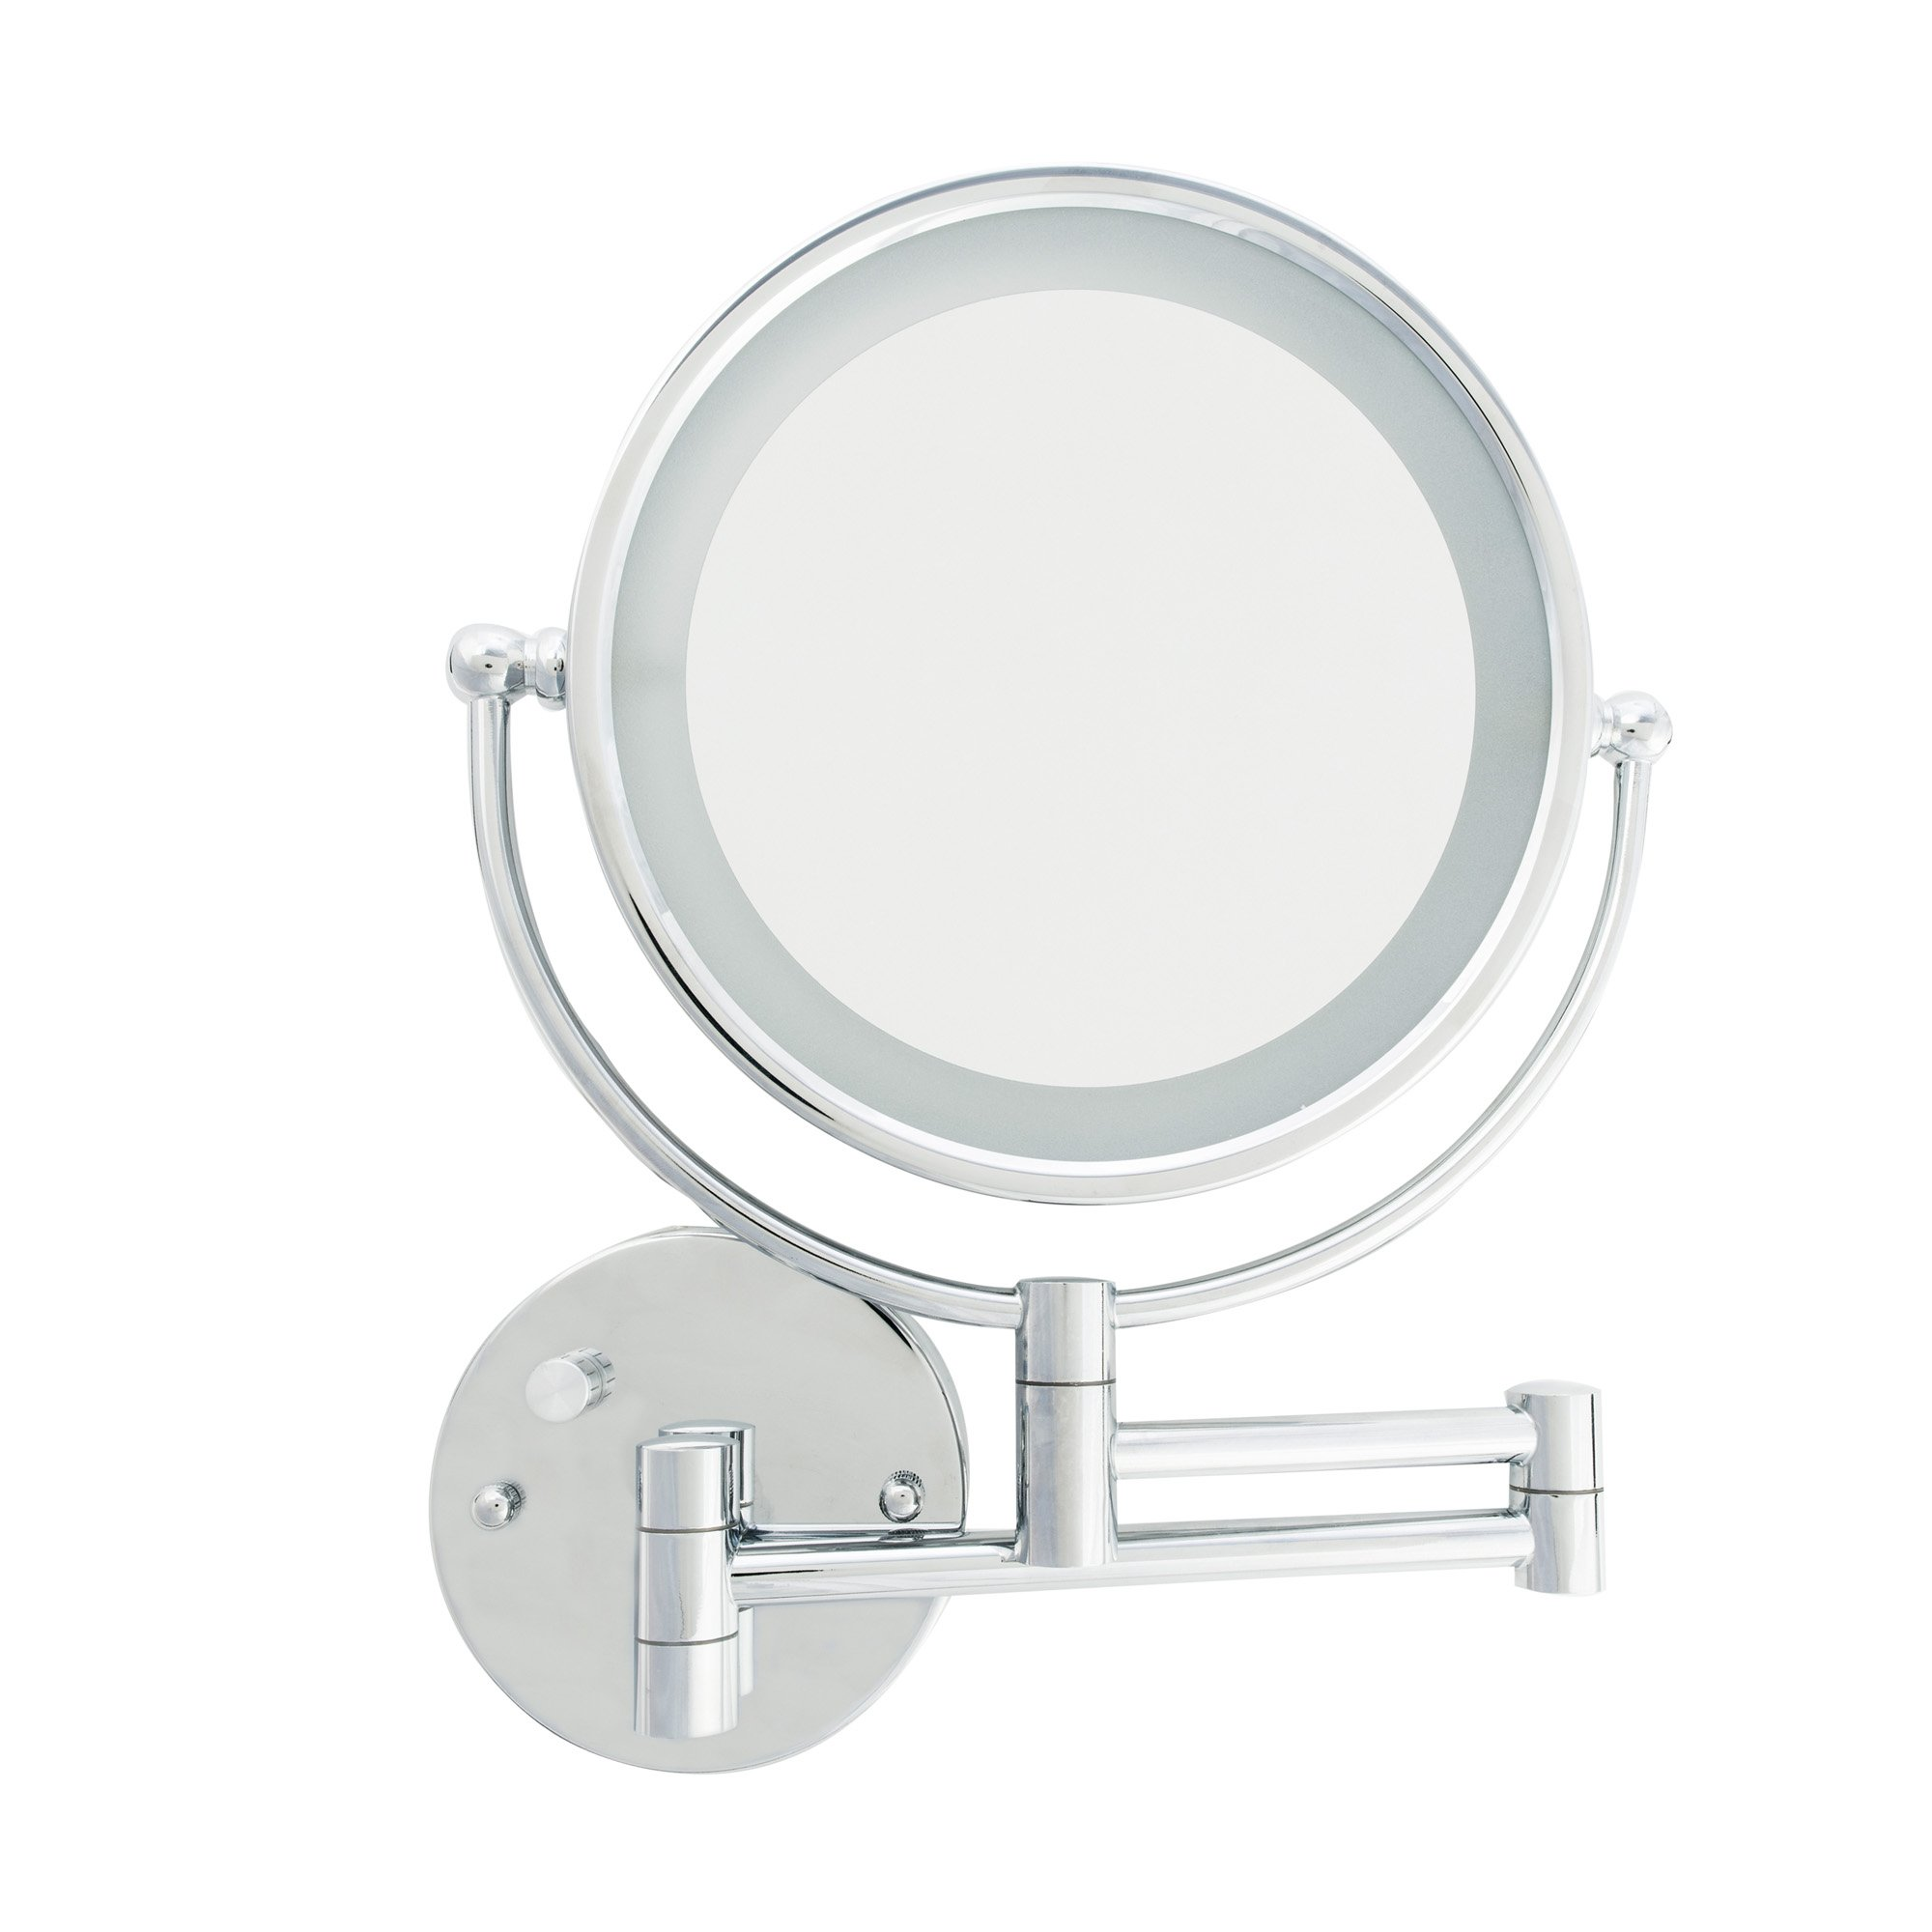 Danielle Creations Chrome LED Lighted Makeup Mirror with Wall Mount, 5X Magnification by Danielle